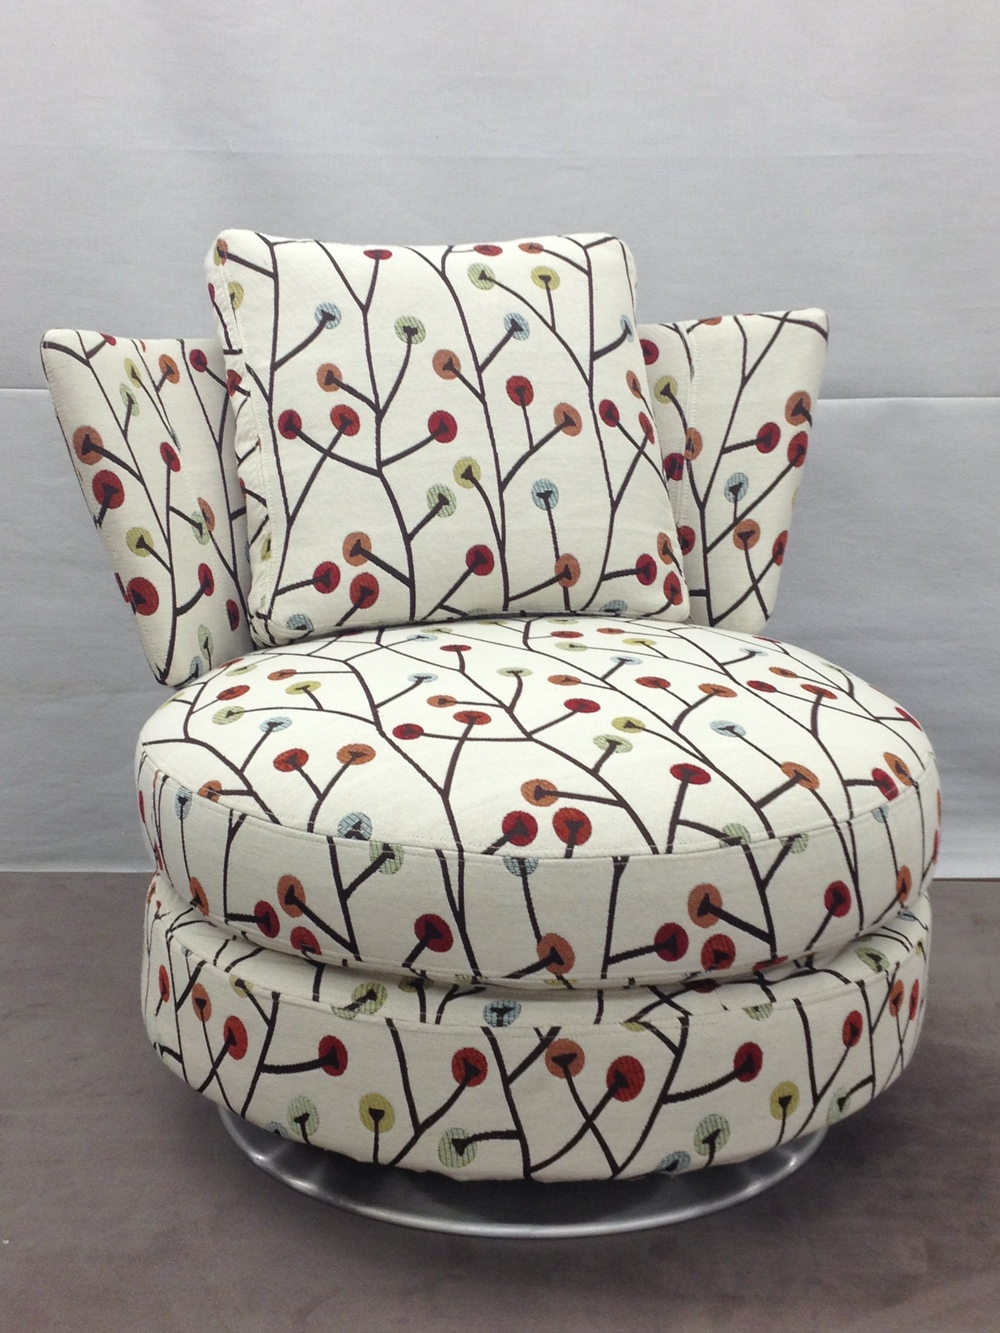 king furniture - dream design - reupholstery